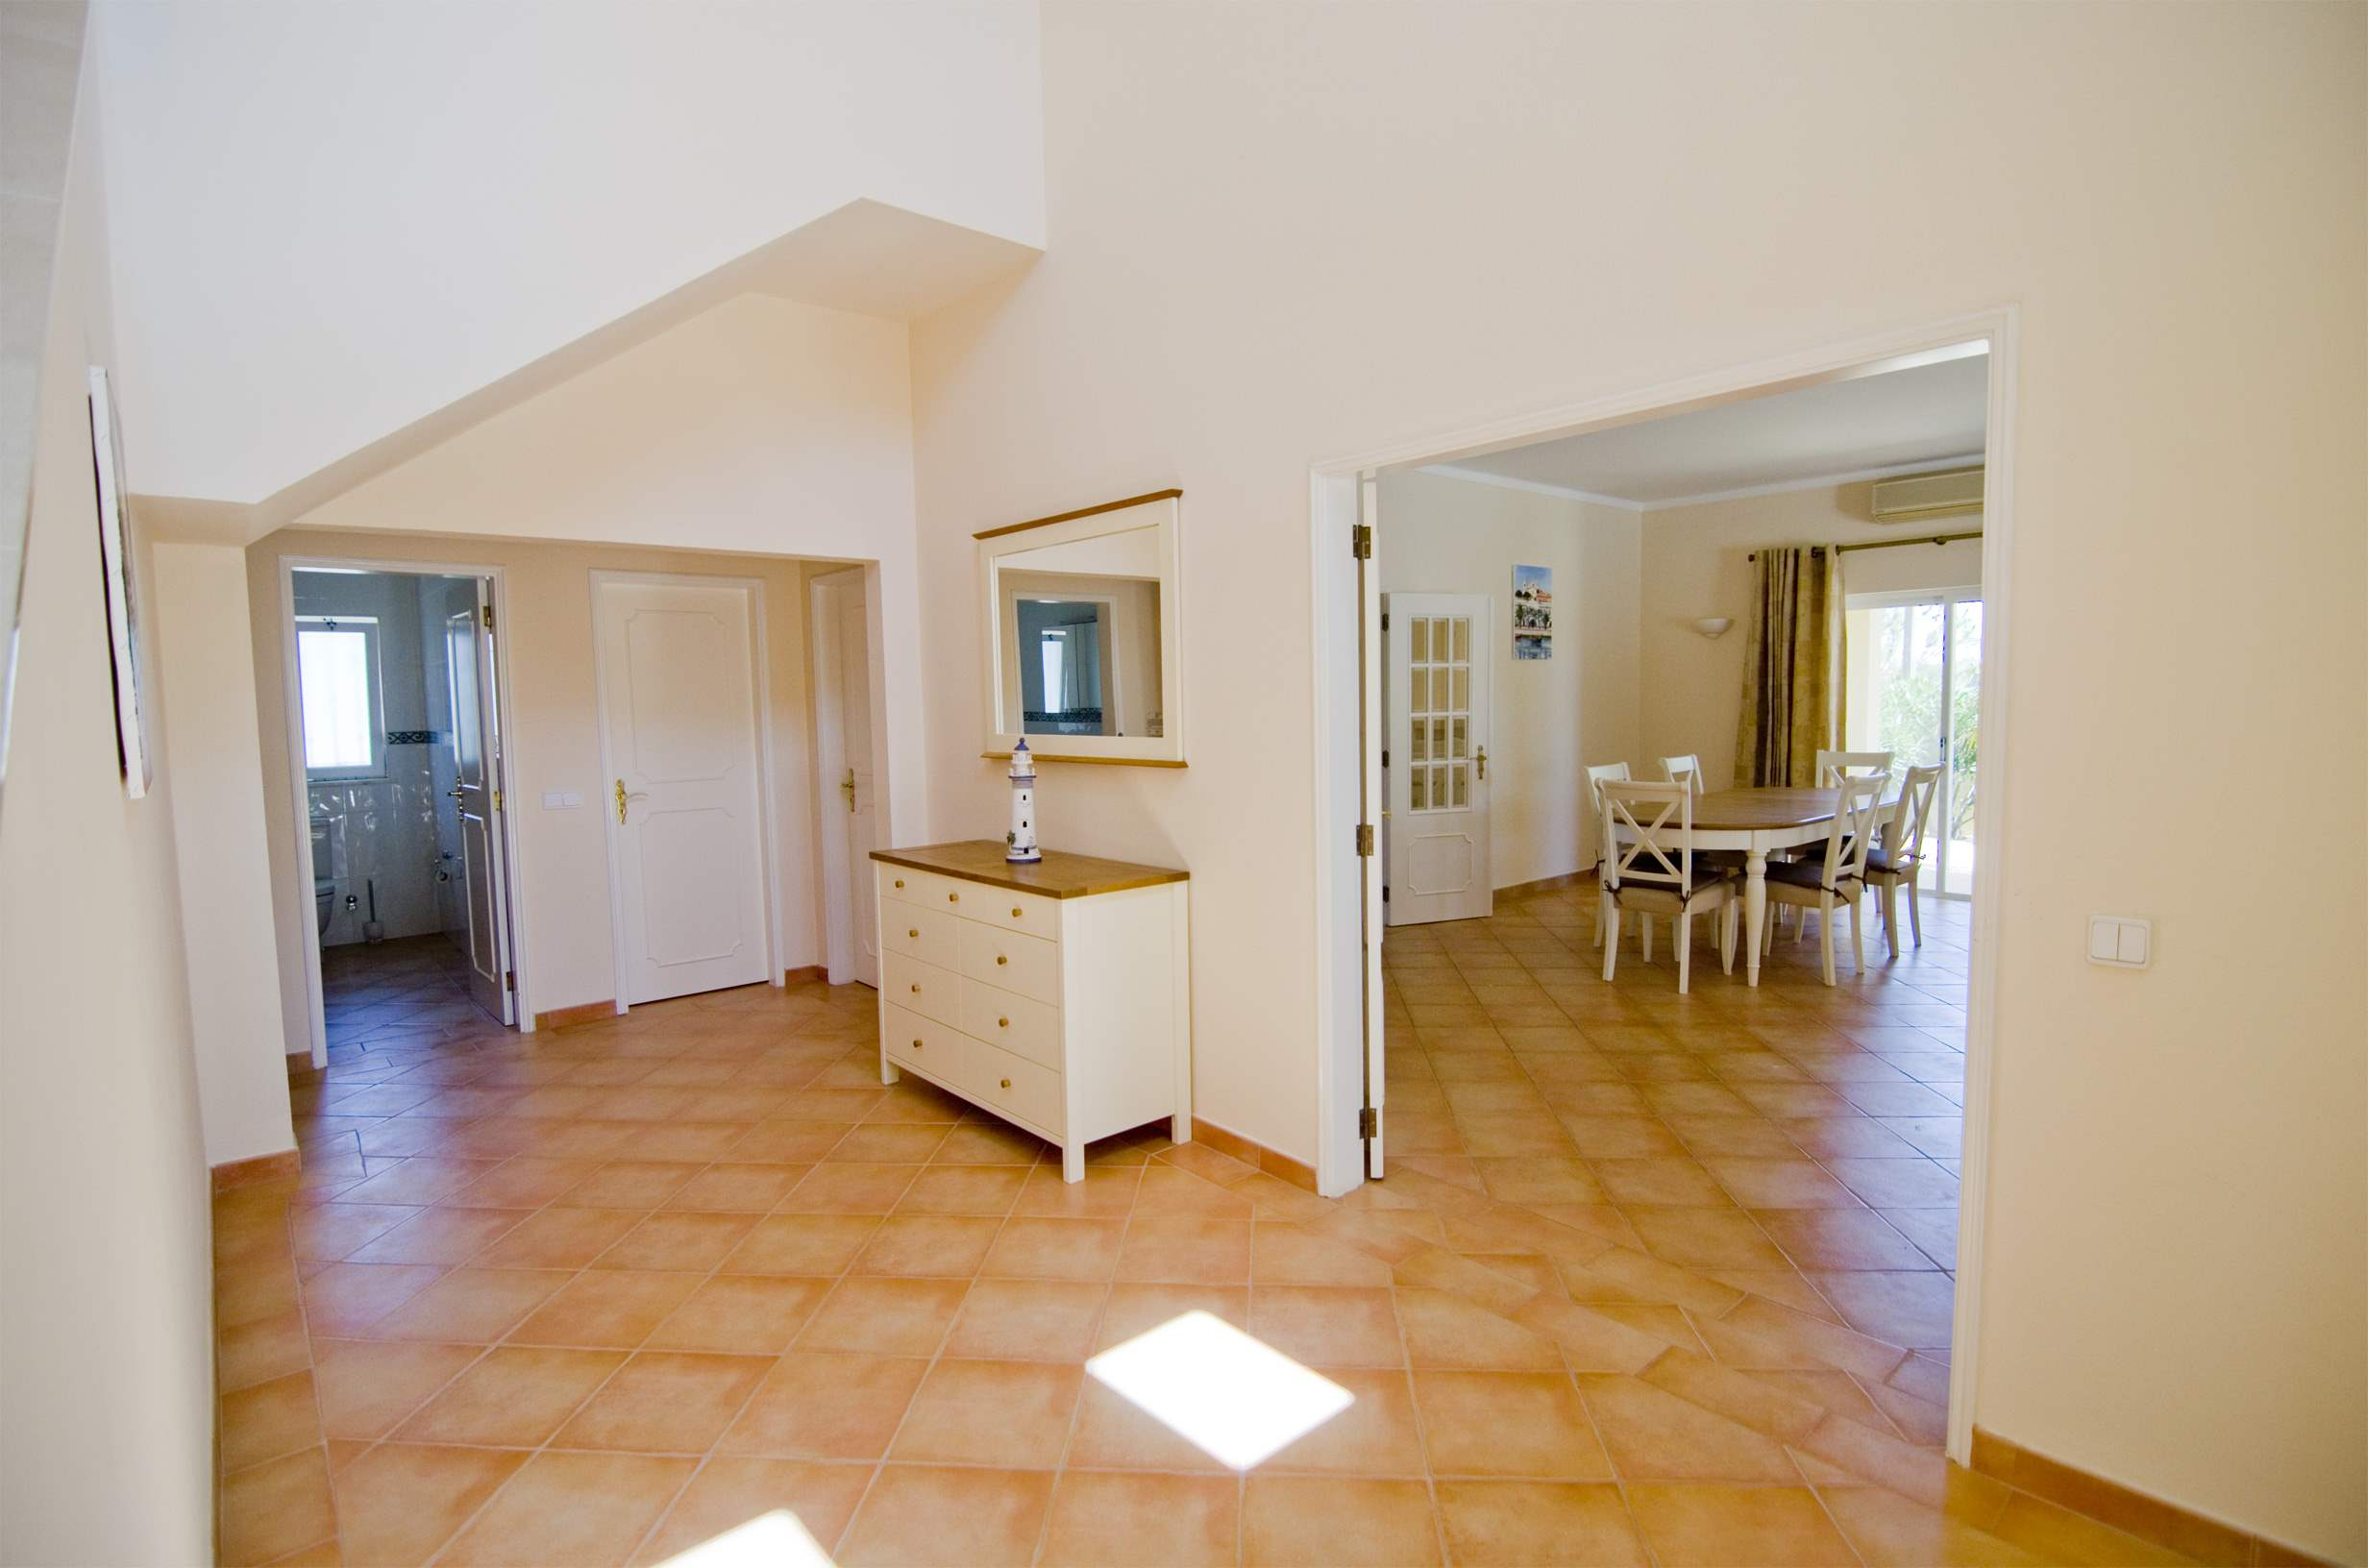 Villa Jasmina, 4 bedroom villa in Vale do Lobo, Algarve Photo #7